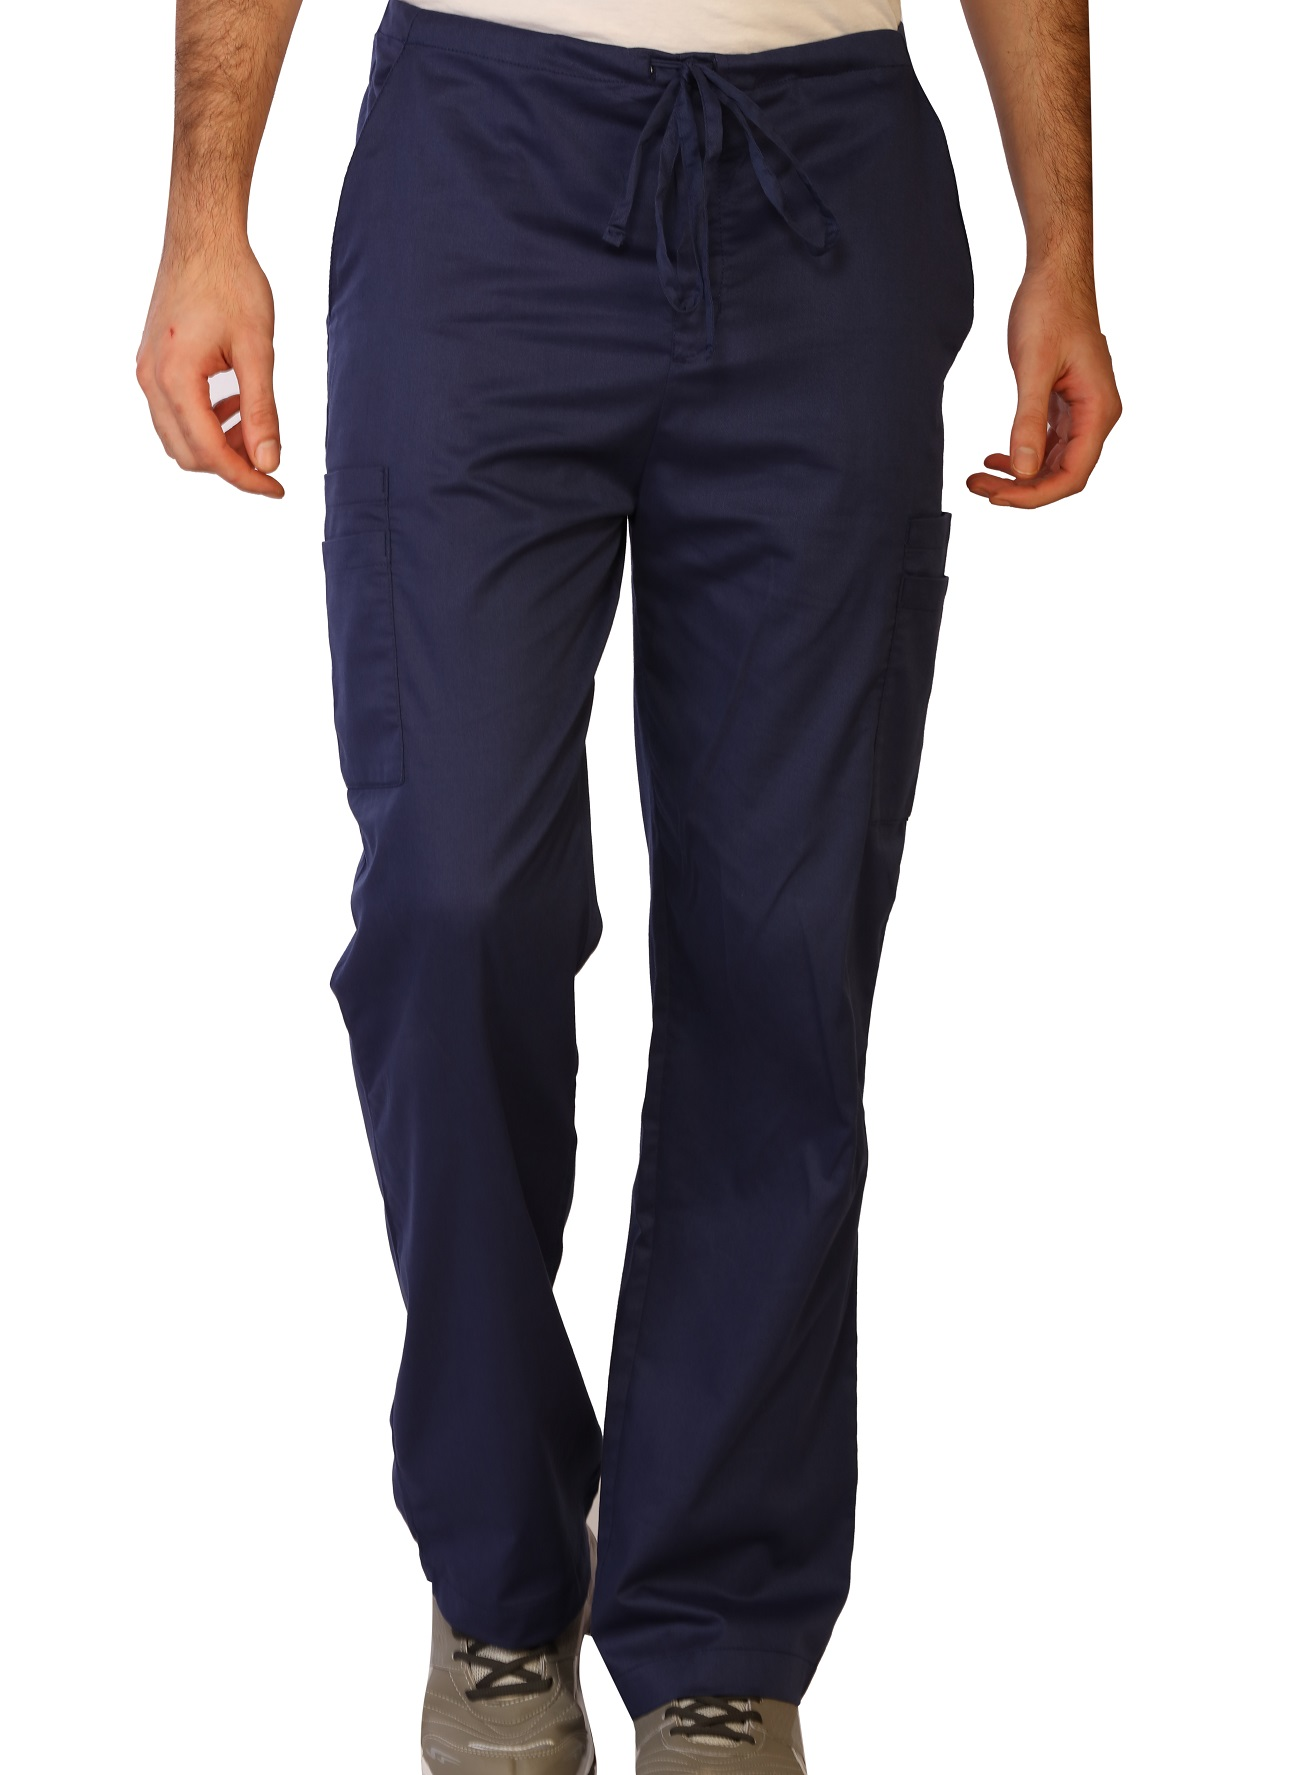 Men's Stretch Double Cargo Scrub Pants, LifeThreads Contego Collection